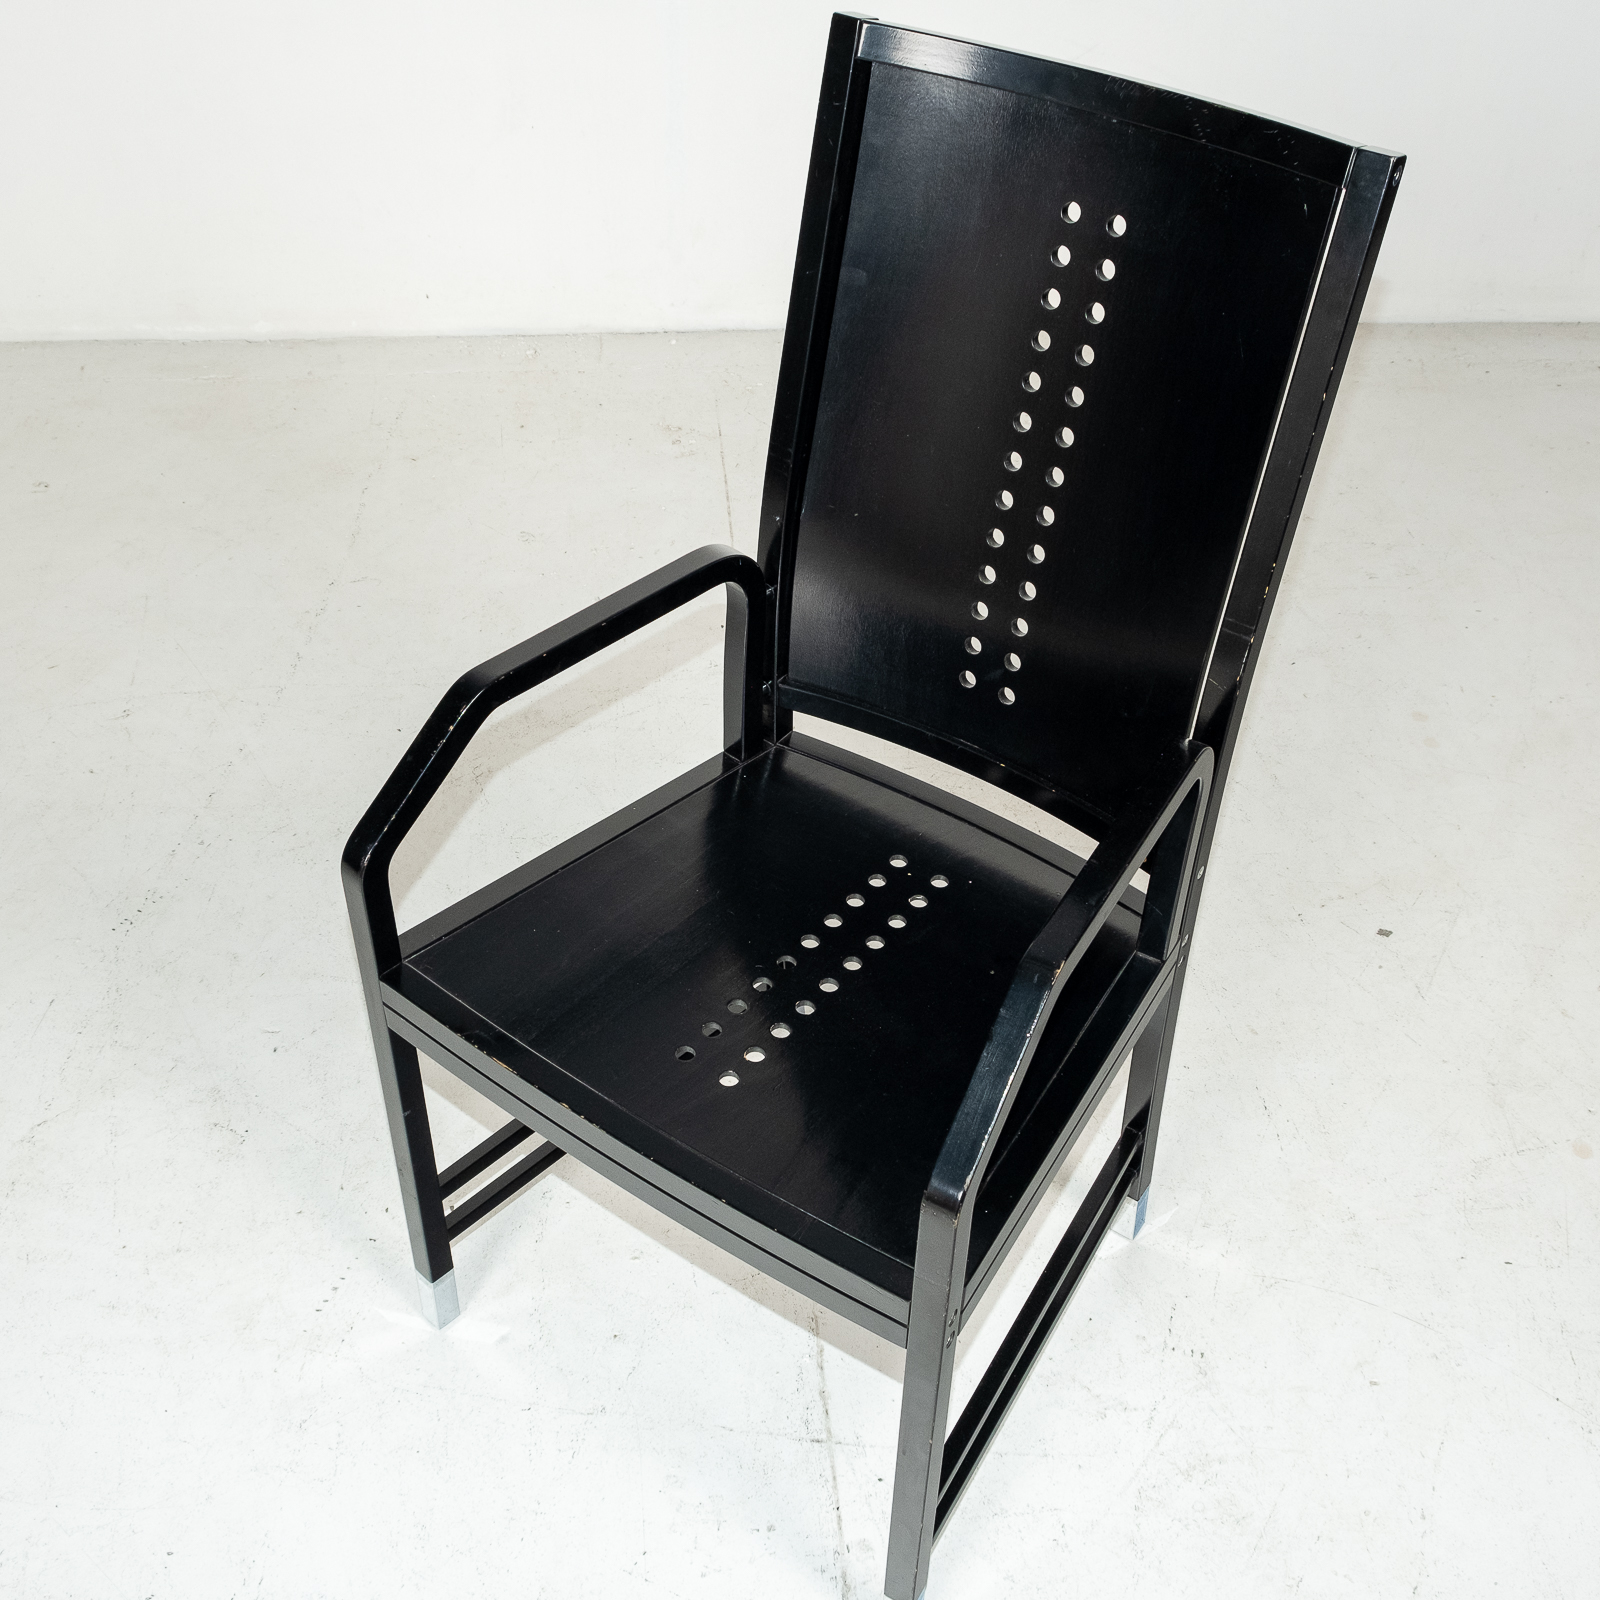 Thonet Chair In Black Hoffmann Style, 1980s, Germany03